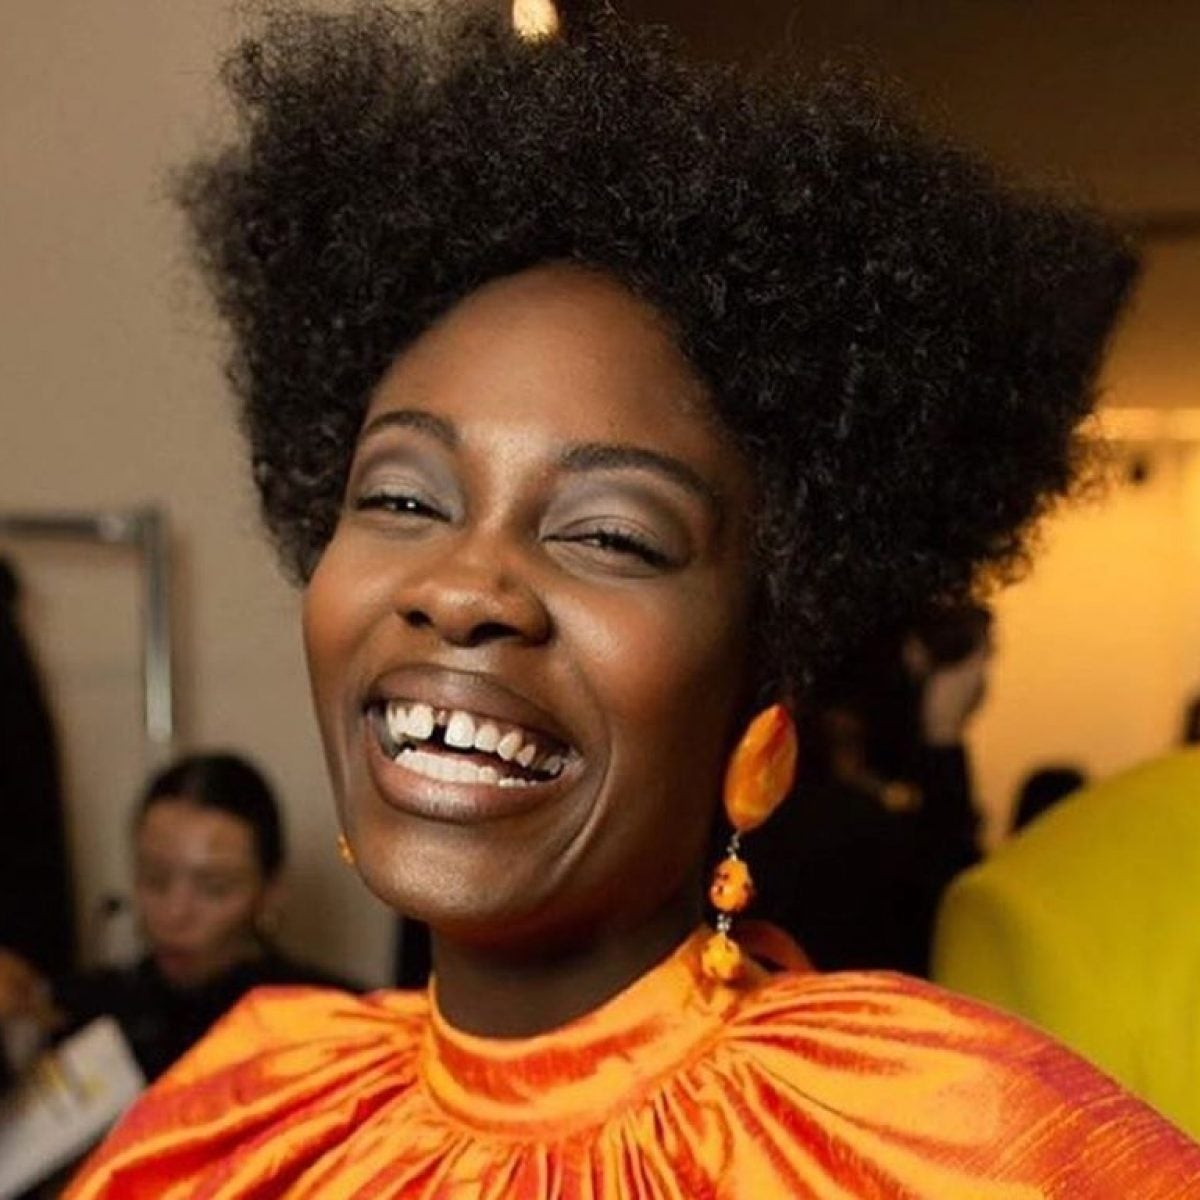 The Top 10 Black Moments Of Fashion Month